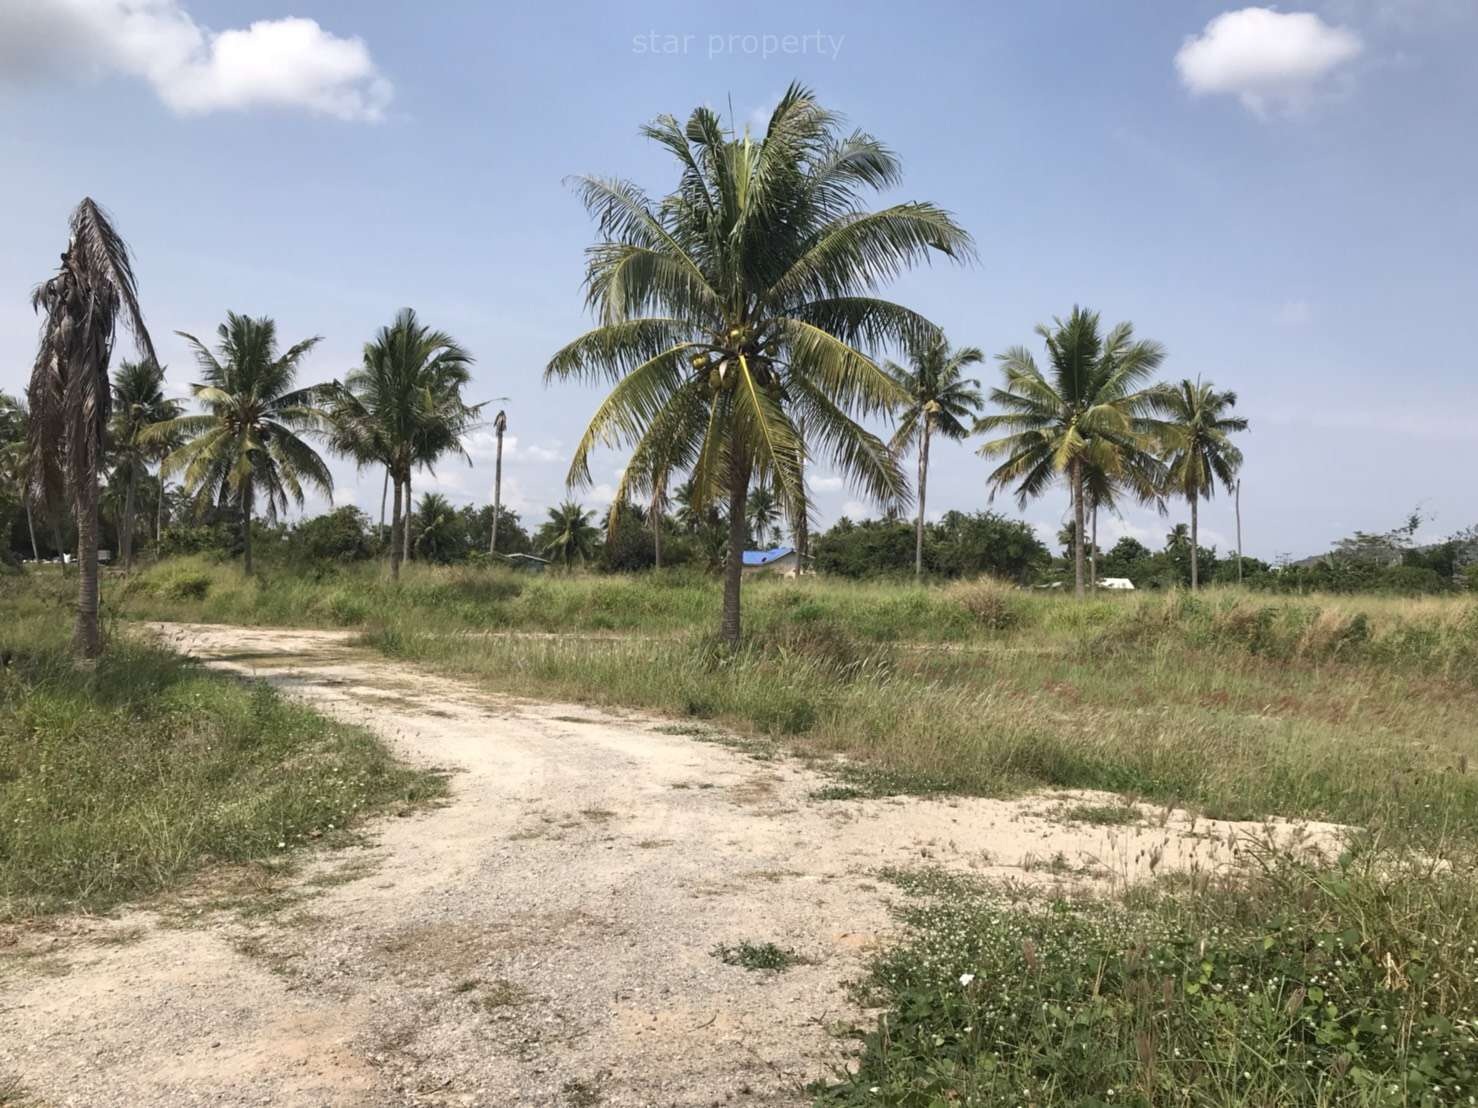 2 Rai of Land for Sale at Hua Hin Soi 70